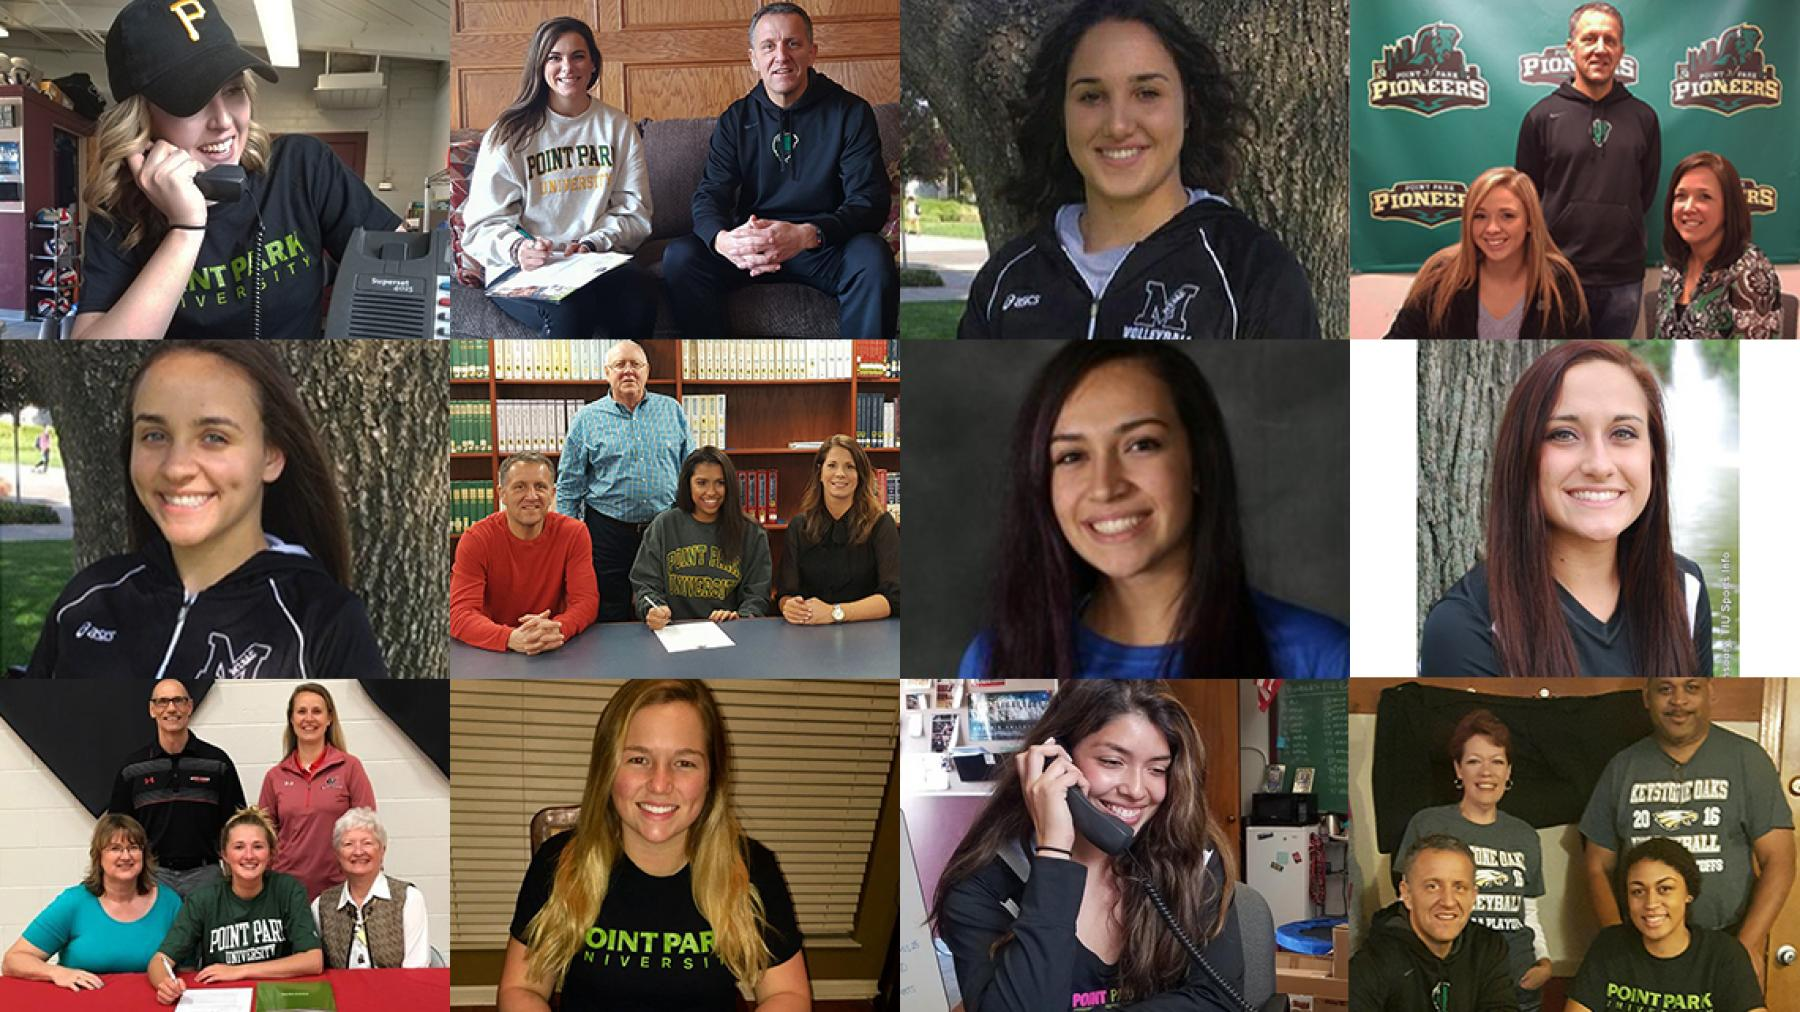 Point Park volleyball 2017 recruiting class adds 12 players to the program